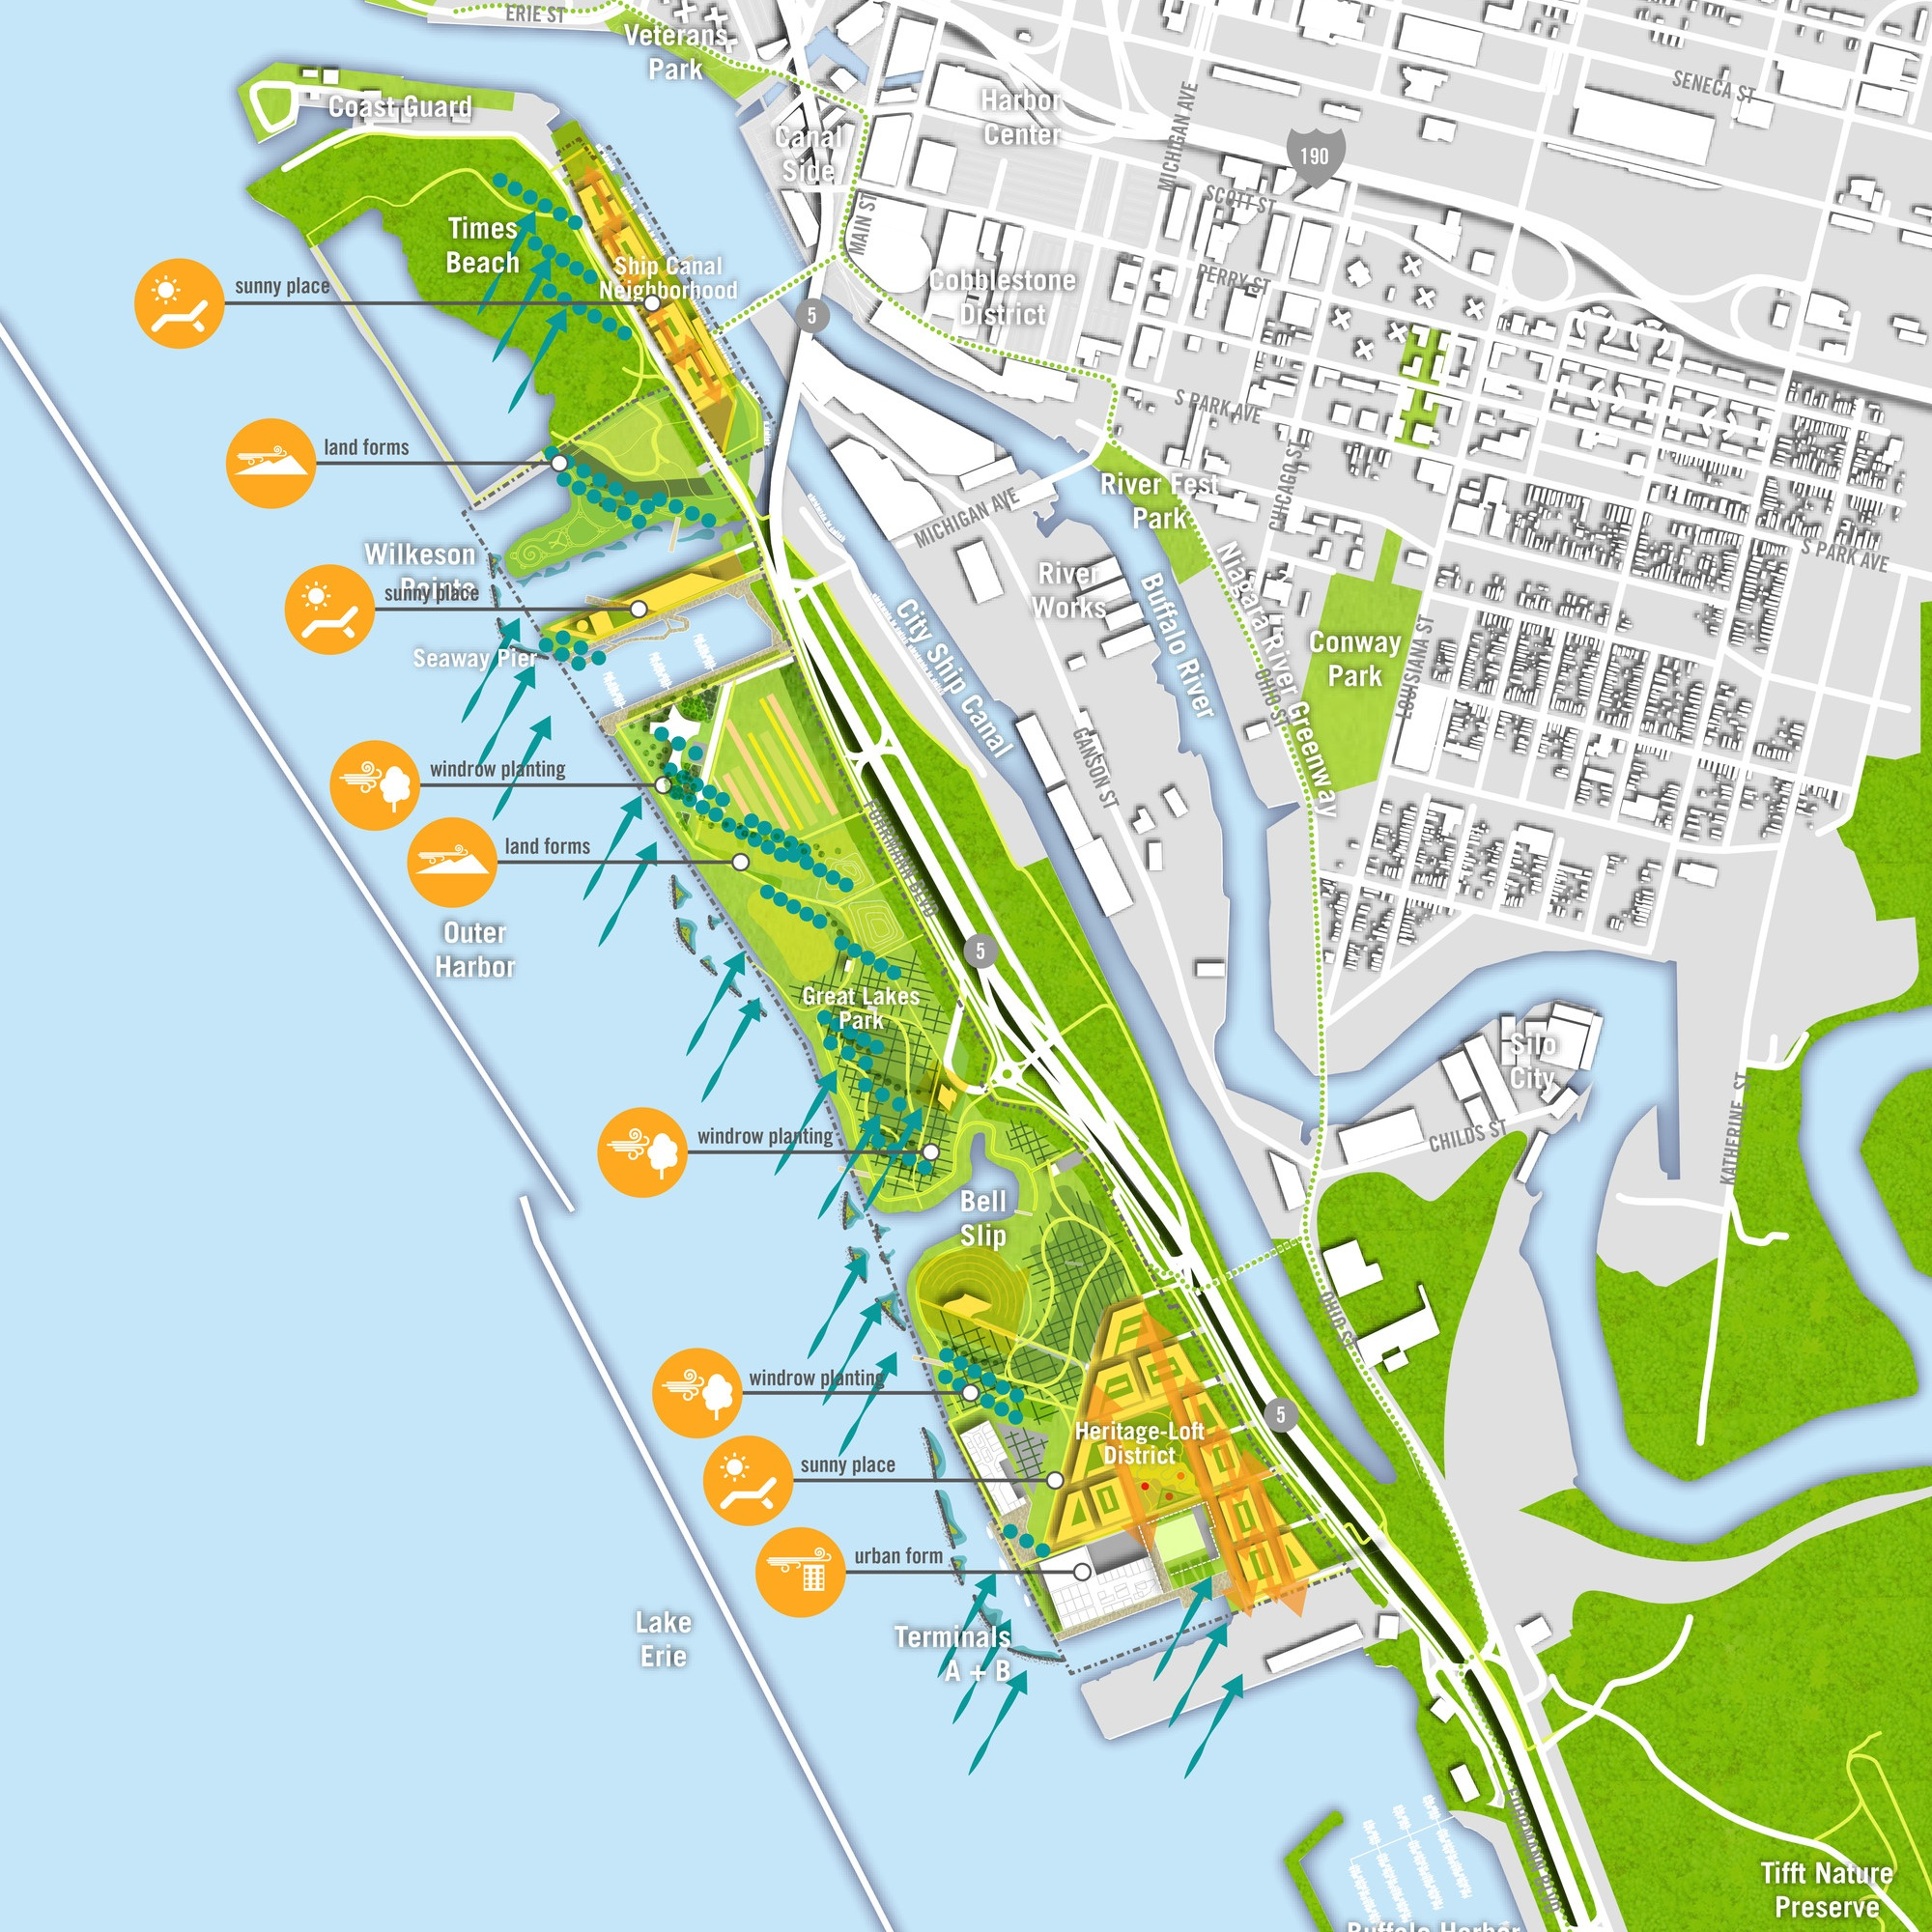 Buffalo Outer Harbor Master Plan by SCAPE and Perkins+Will  Source:  Arch Daily